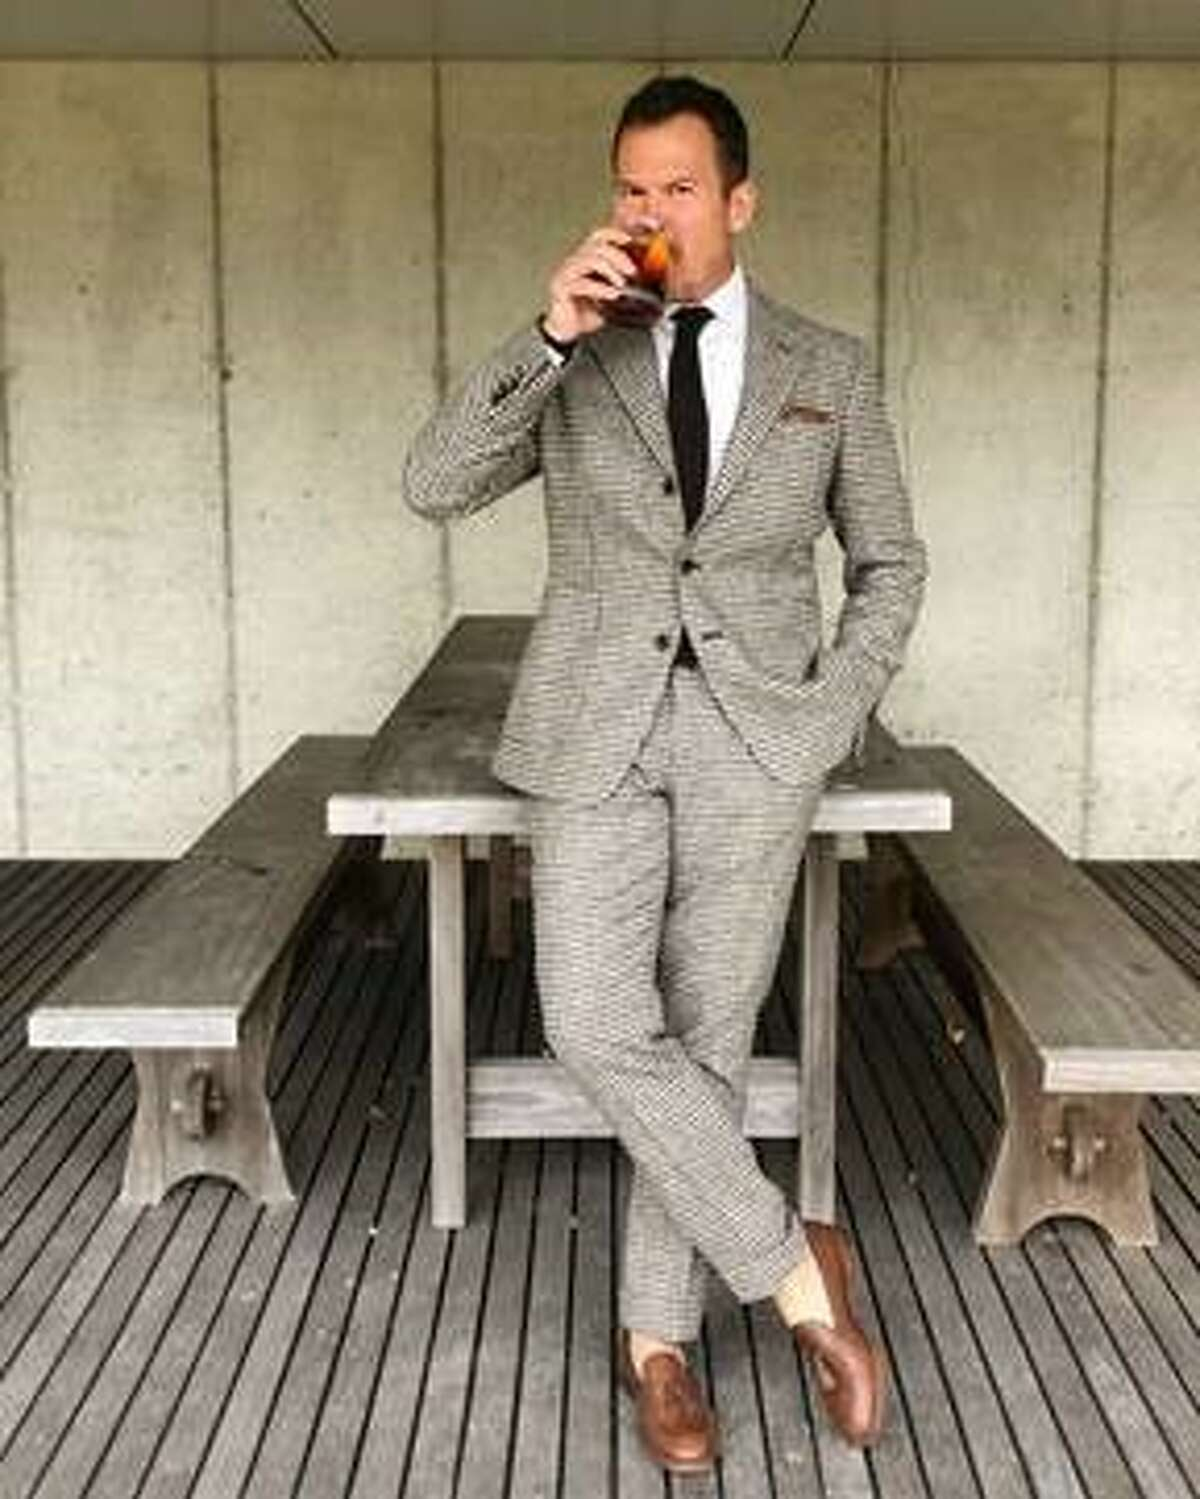 """Matt Hranek, author of the new cocktail book """"The Negroni""""will discuss and sample variations of the classic drink during an appearance at the Saratoga Performing Arts Center on Oct. 16."""